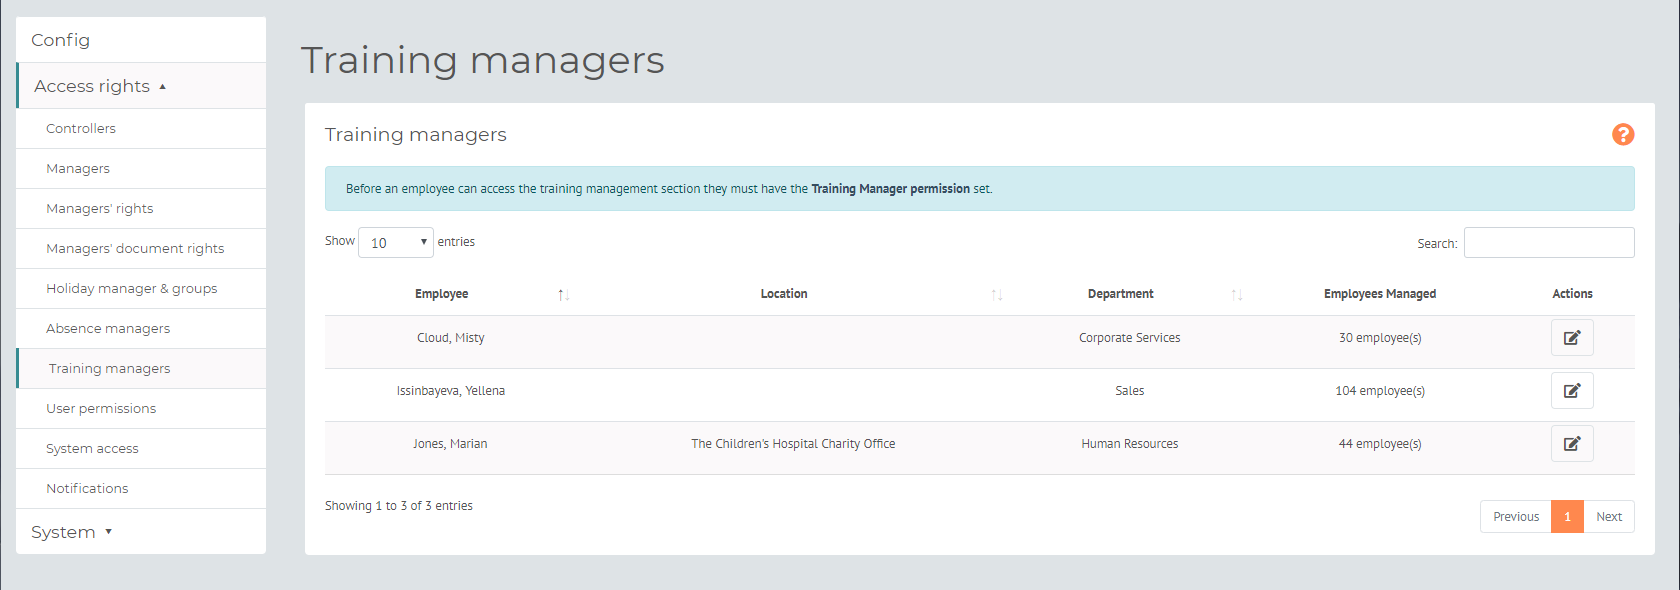 myhrtoolkit config training managers